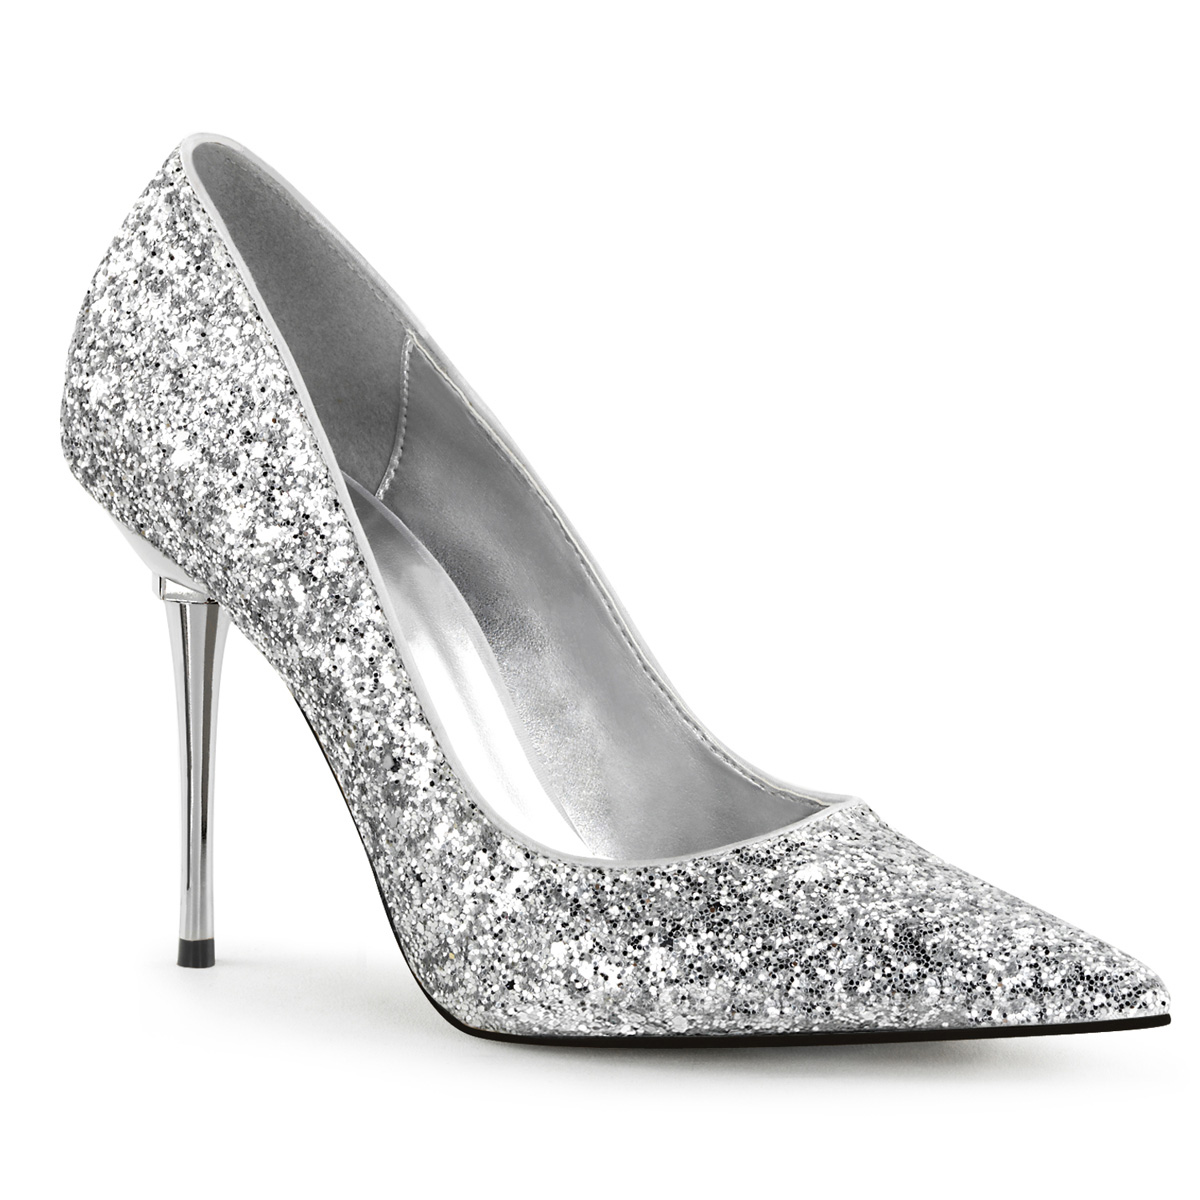 Stiletto Pumps APPEAL-20G - Glitter Silver e19602a0e965